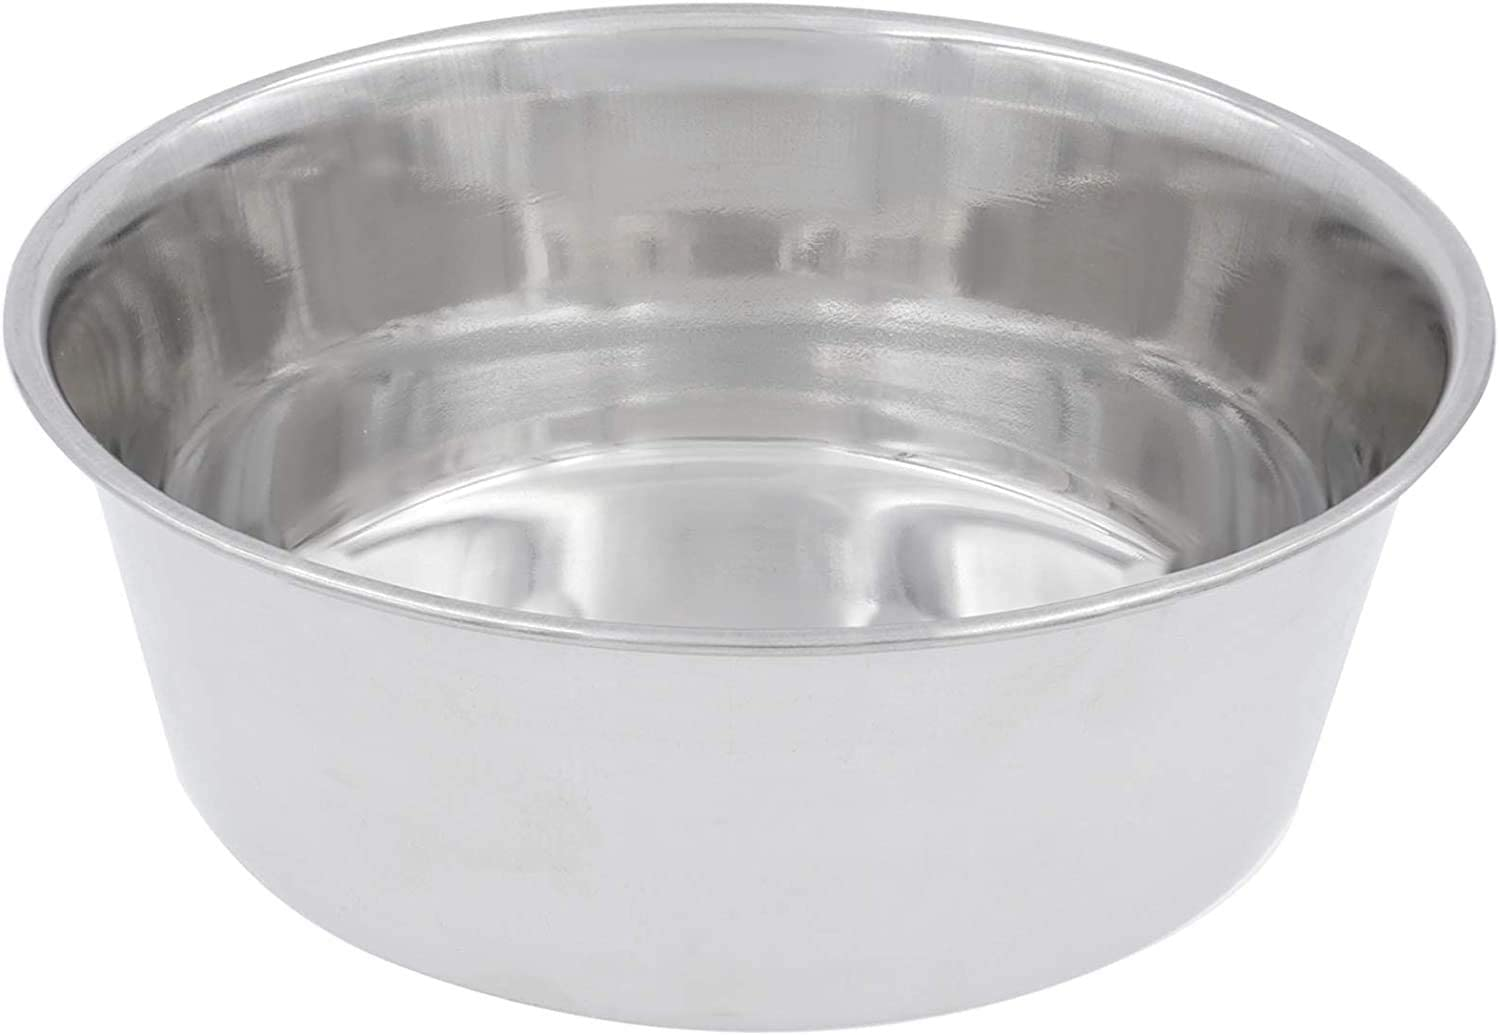 Fuzzy Puppy Pet Products HD-1Q Heavy Duty Dog Bowl, 1 Quart